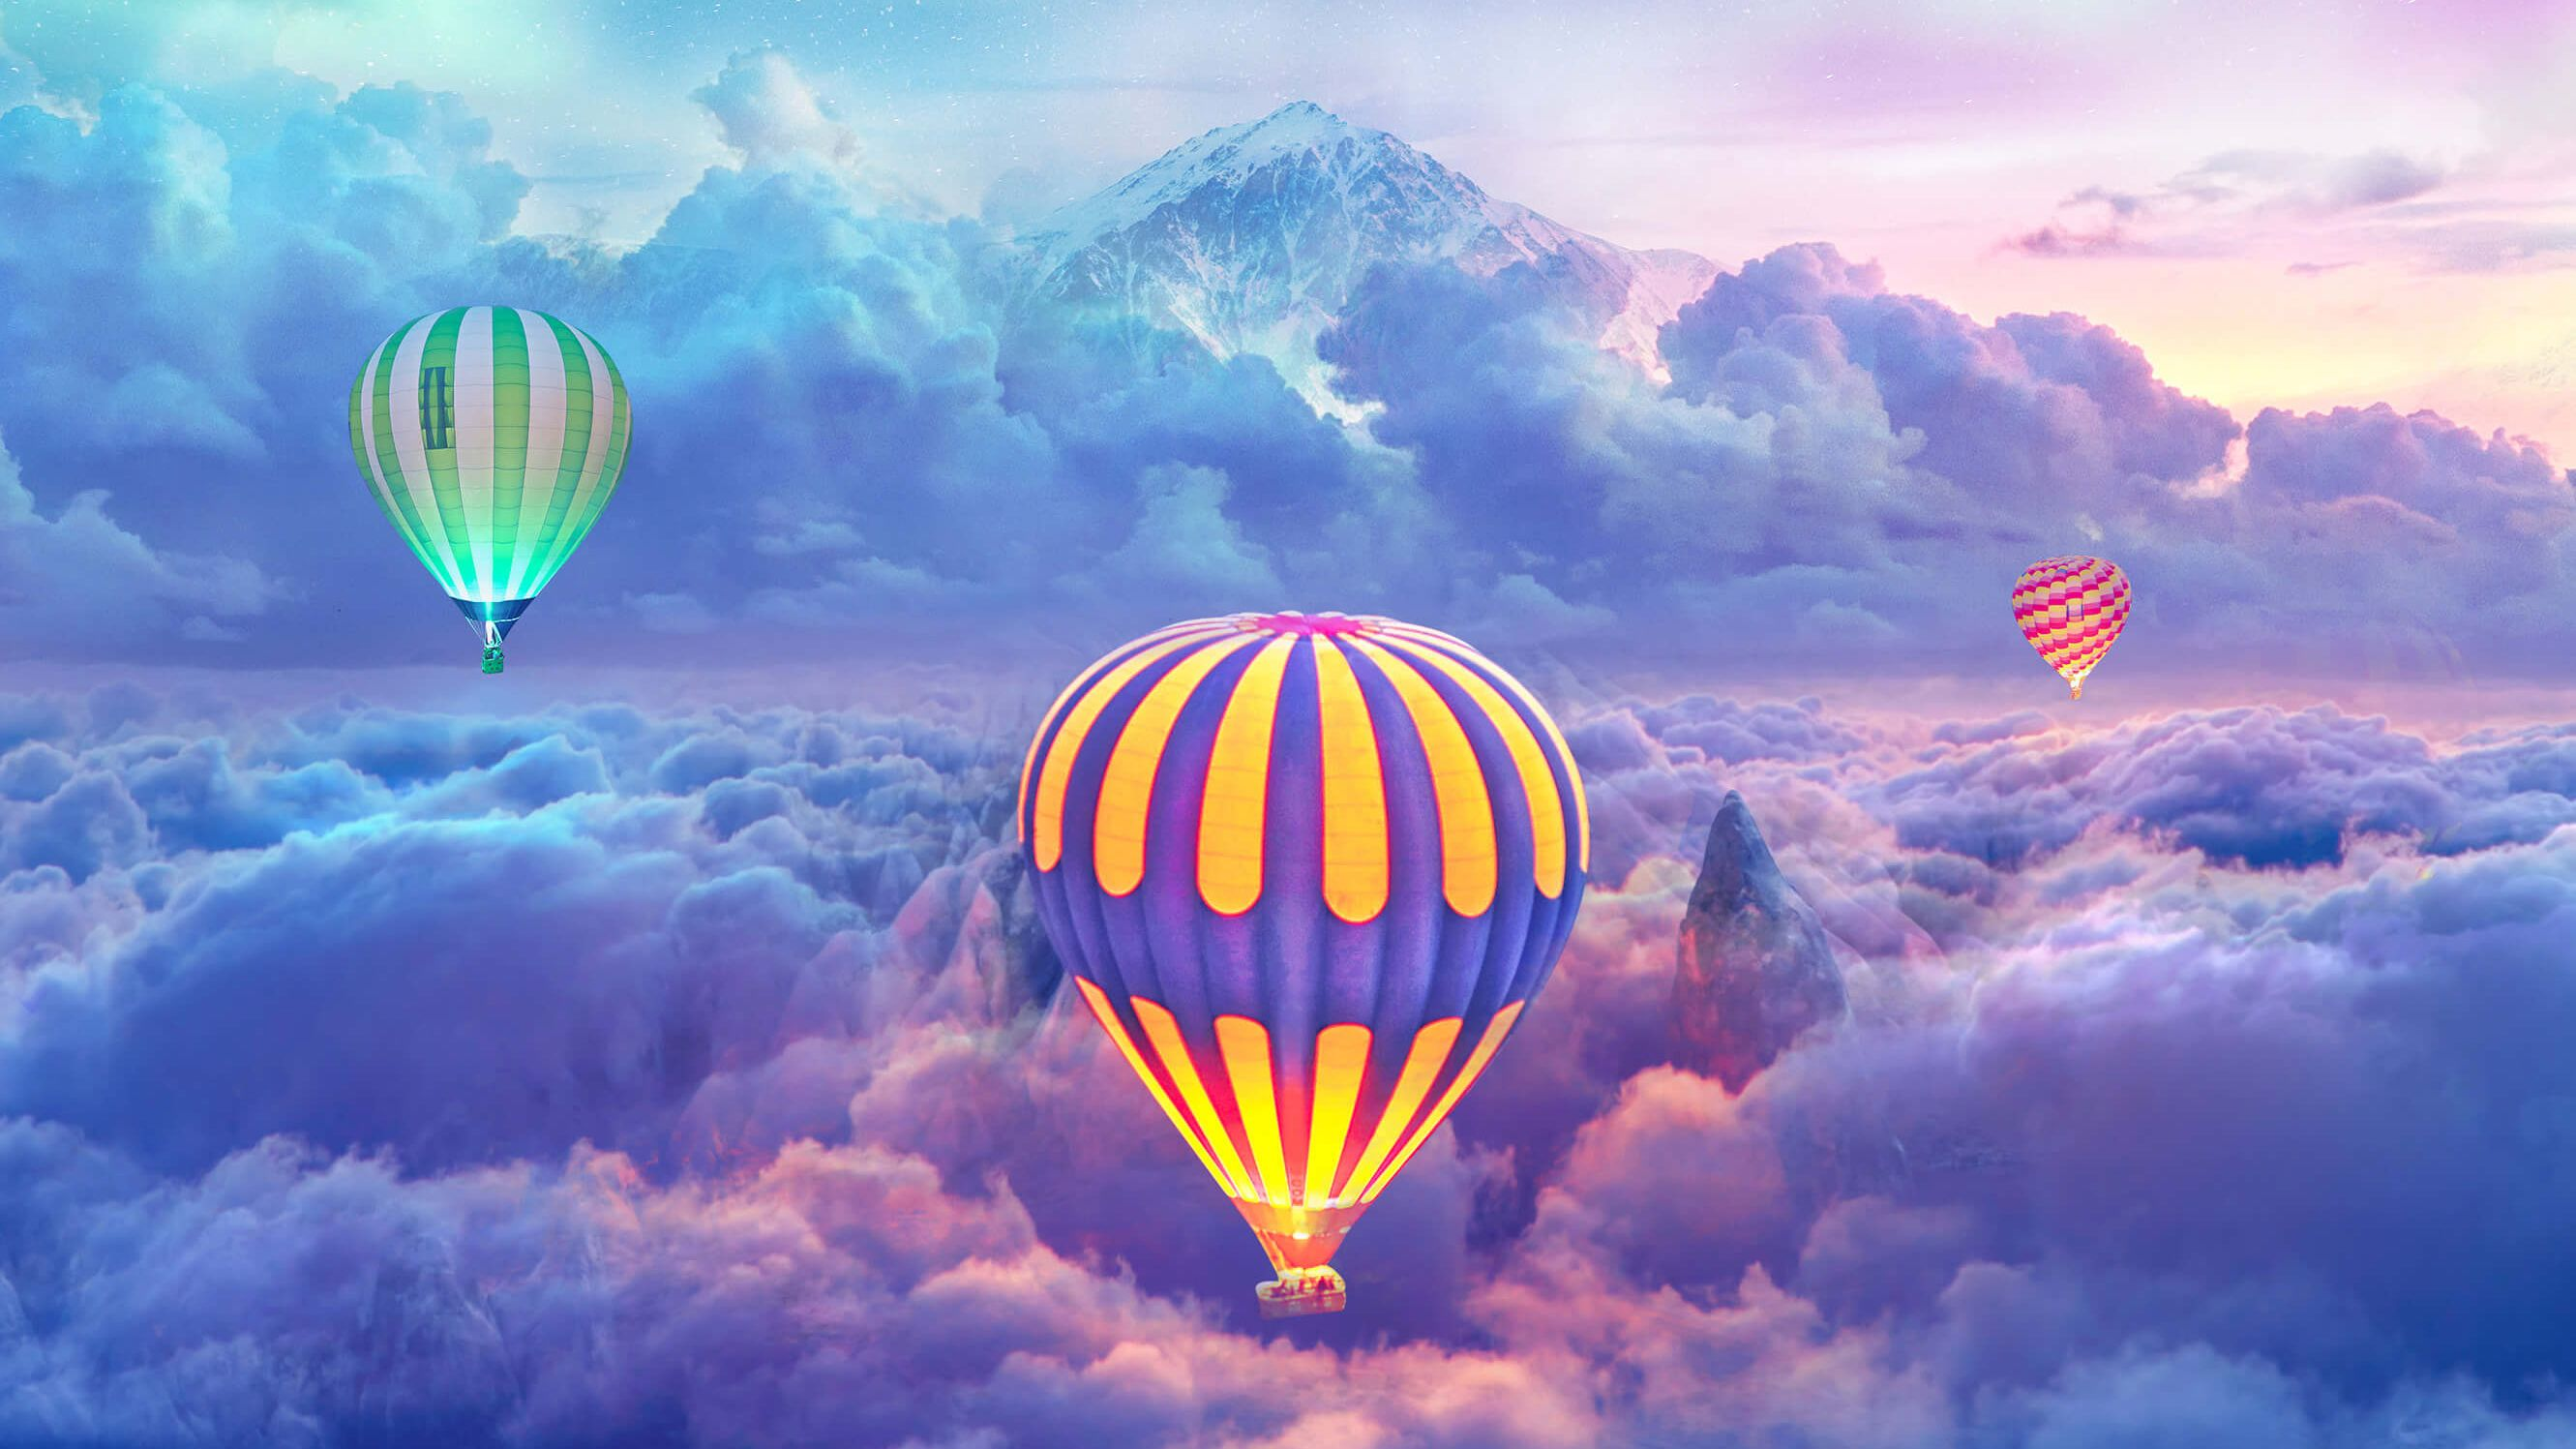 Hot Air Balloon Wallpapers Top Free Hot Air Balloon Backgrounds